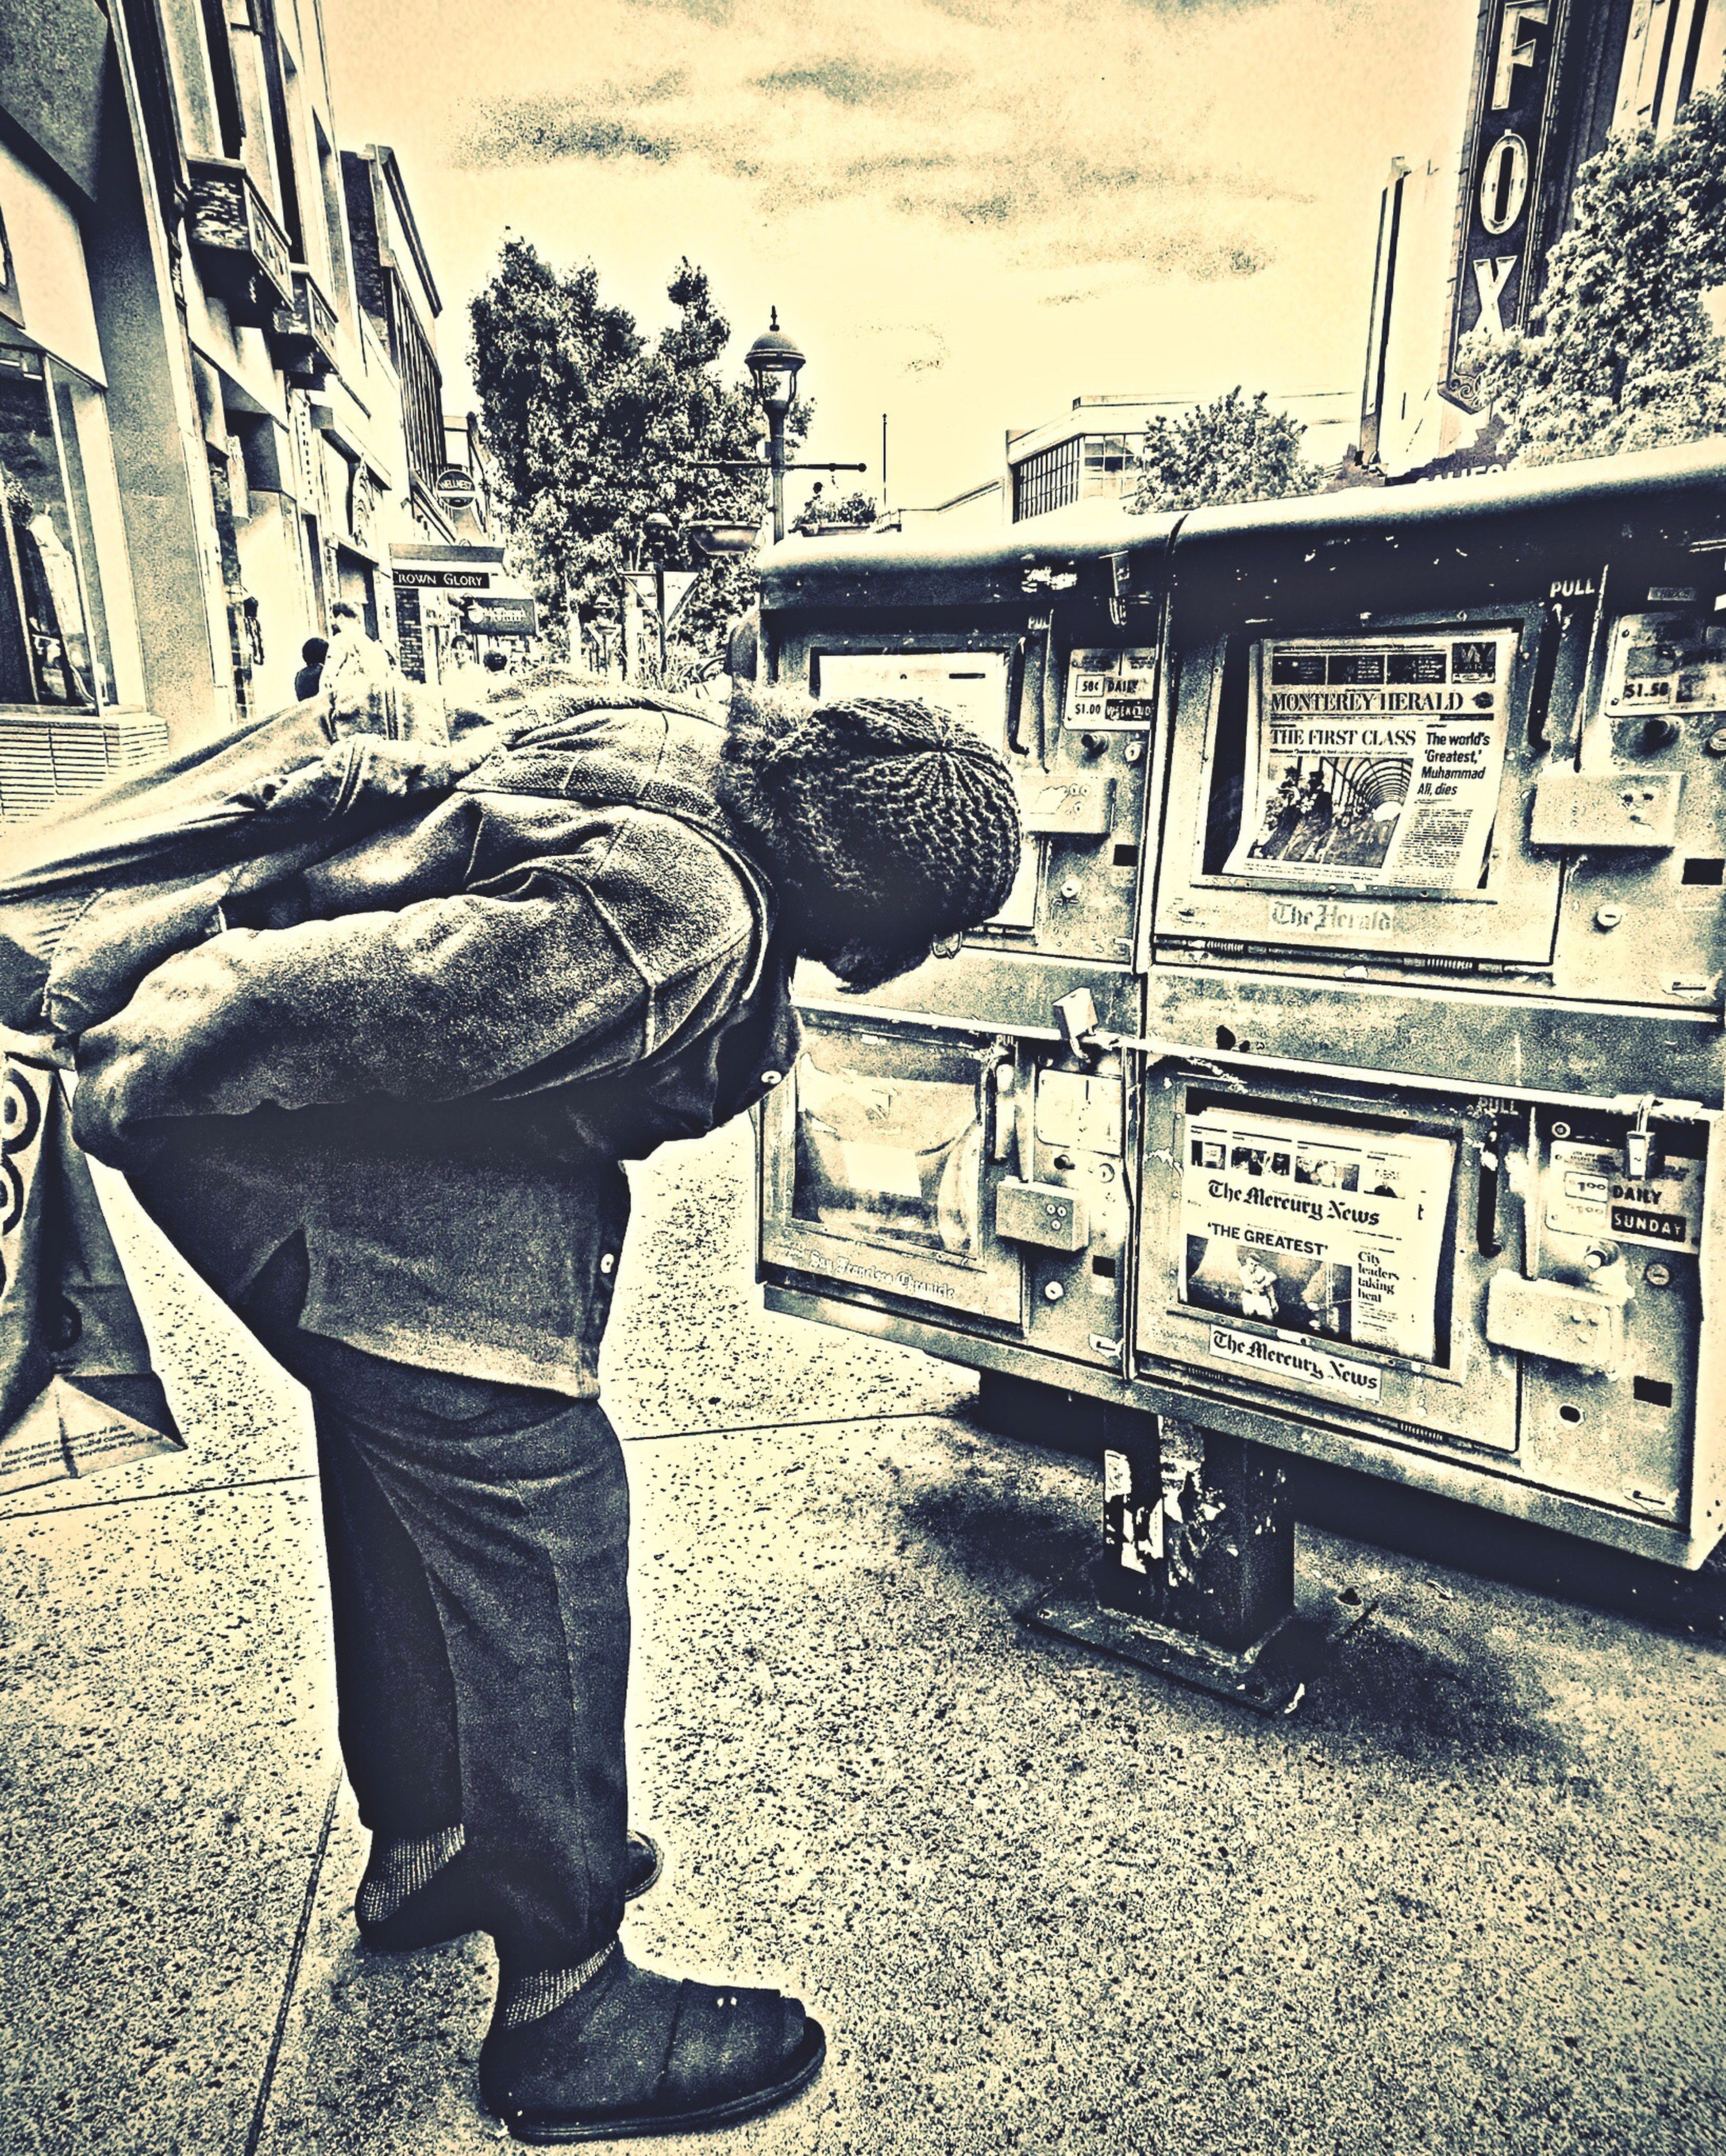 RIP Mohamed Ali 74 - old town Main St Salinas, CA in front of Dudly's Restaurant Visual Poetry My Perspective #headlines #news #newsstand #reading